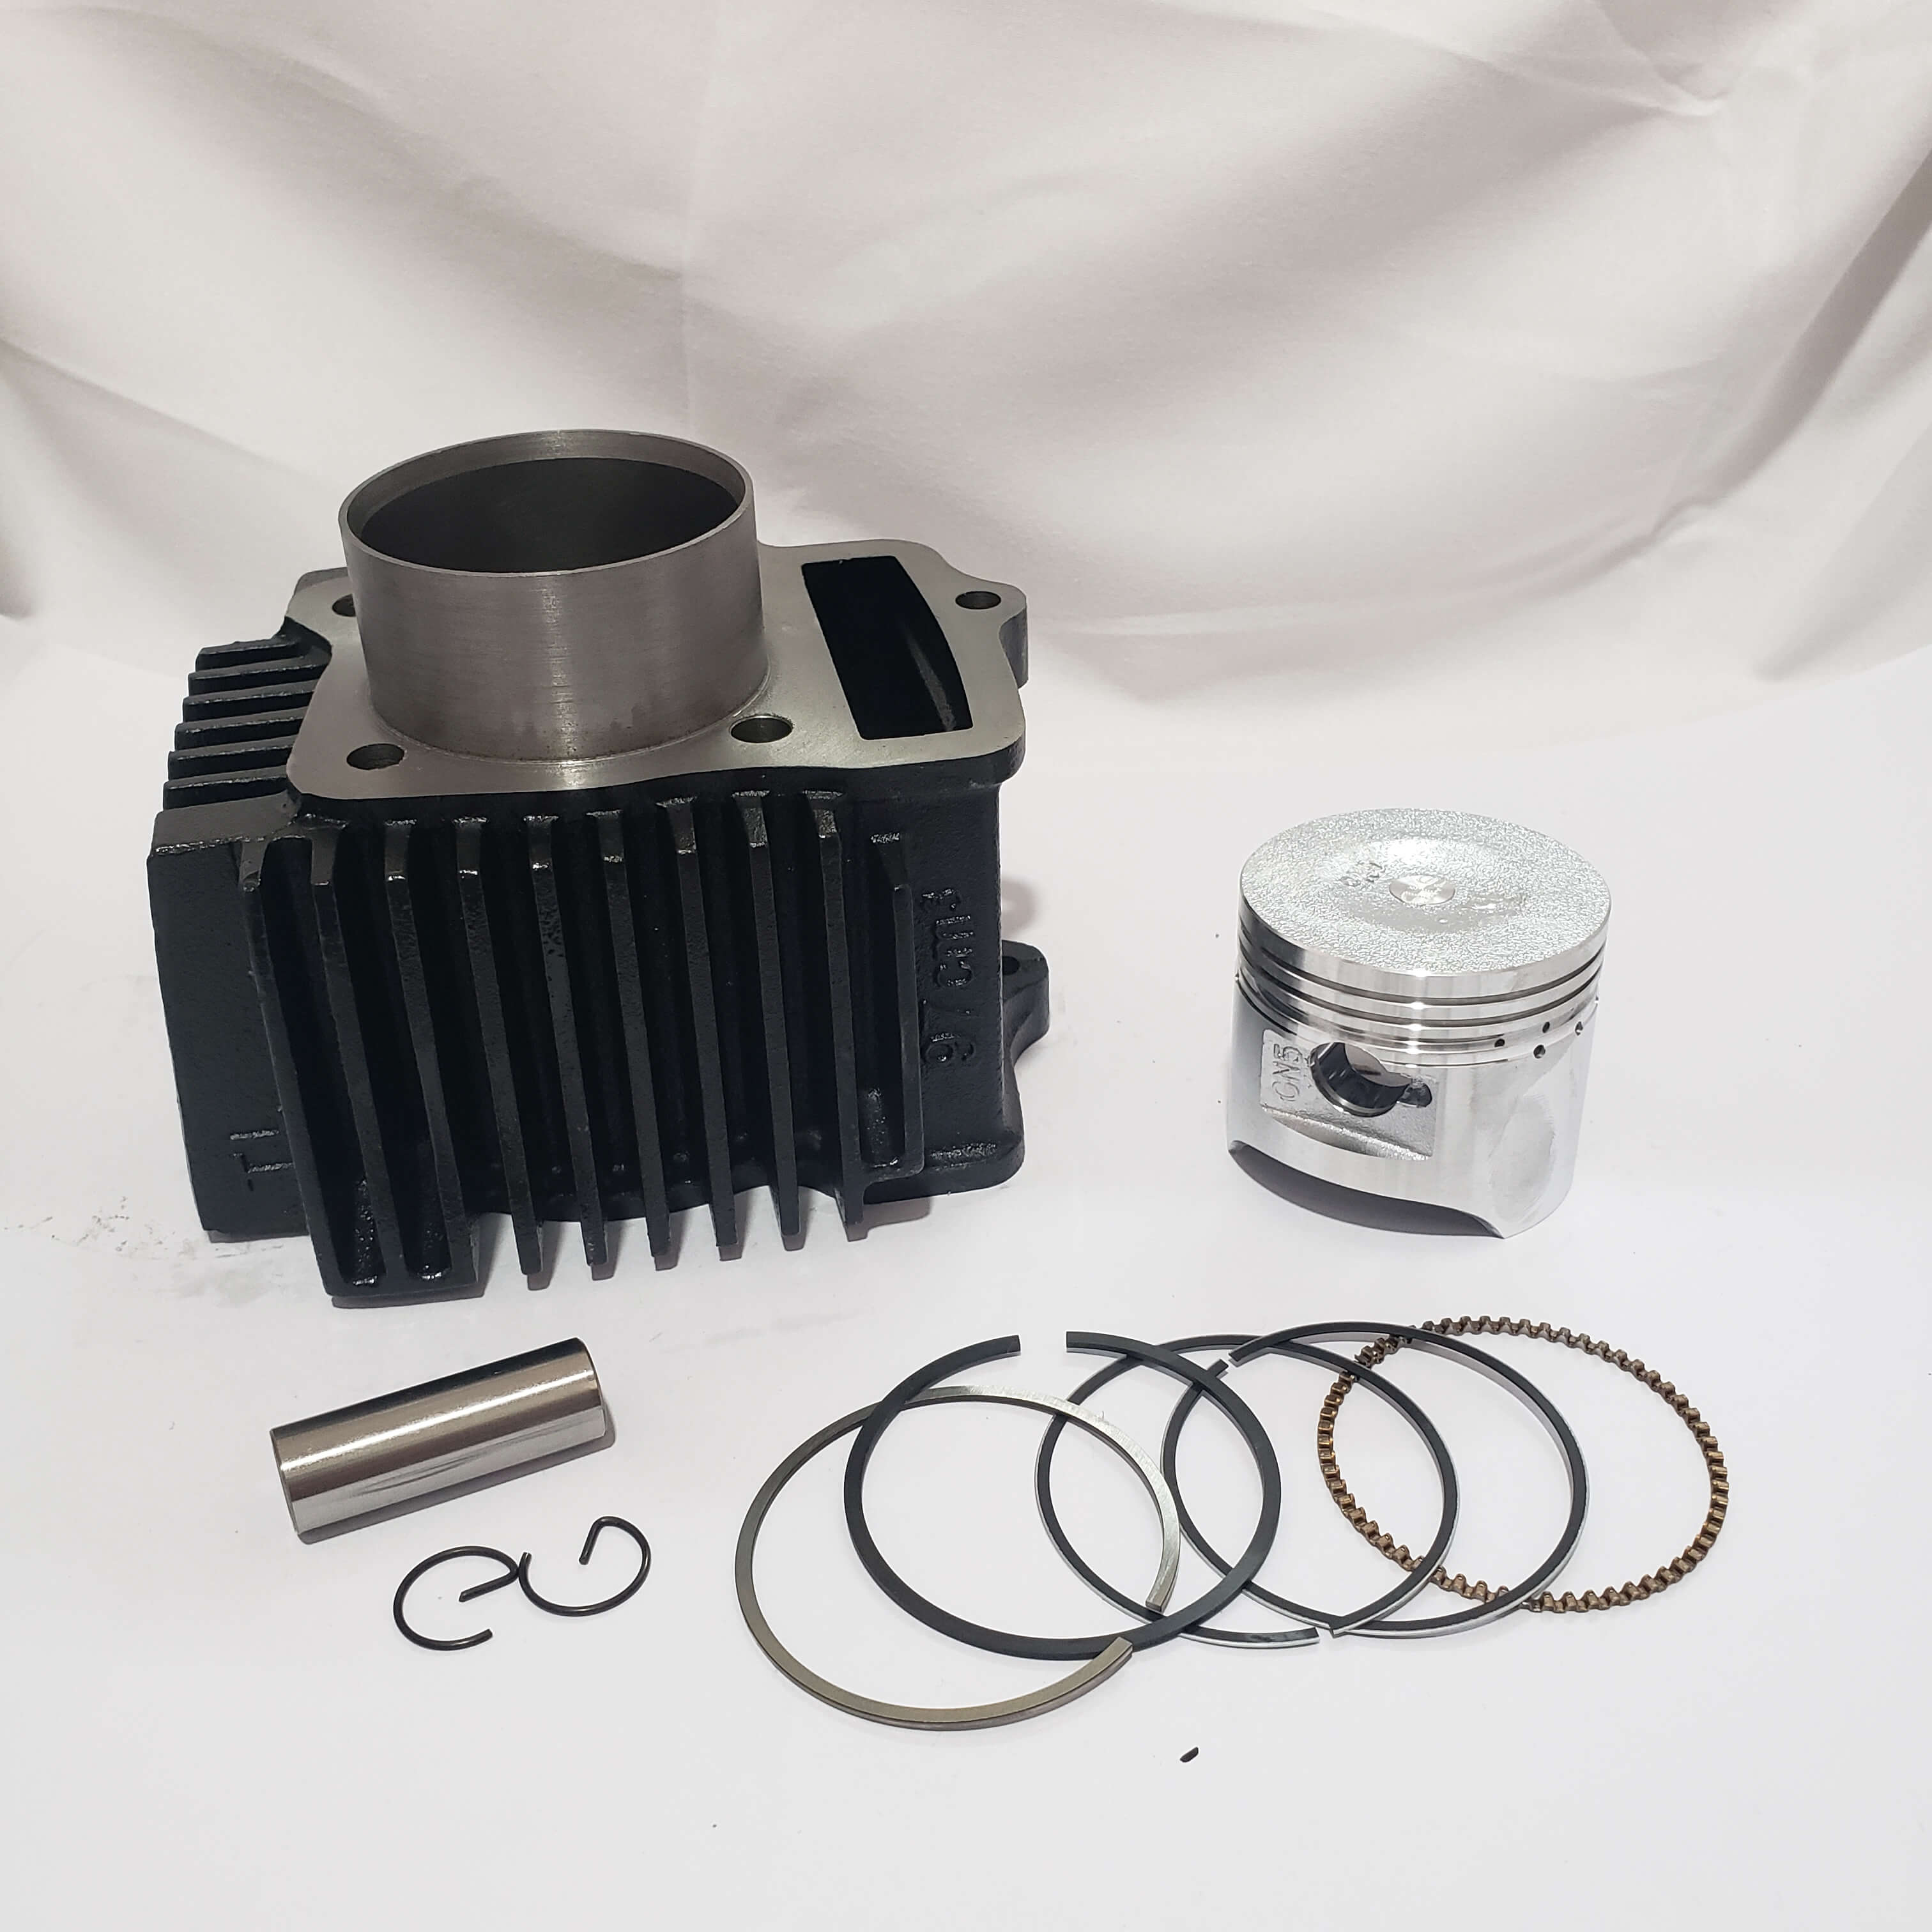 SUPRA GRAND EX5 <strong>C100</strong> GN5 50 53 54 55 56MM <strong>MOTORCYCLE</strong> CYLINDER KIT